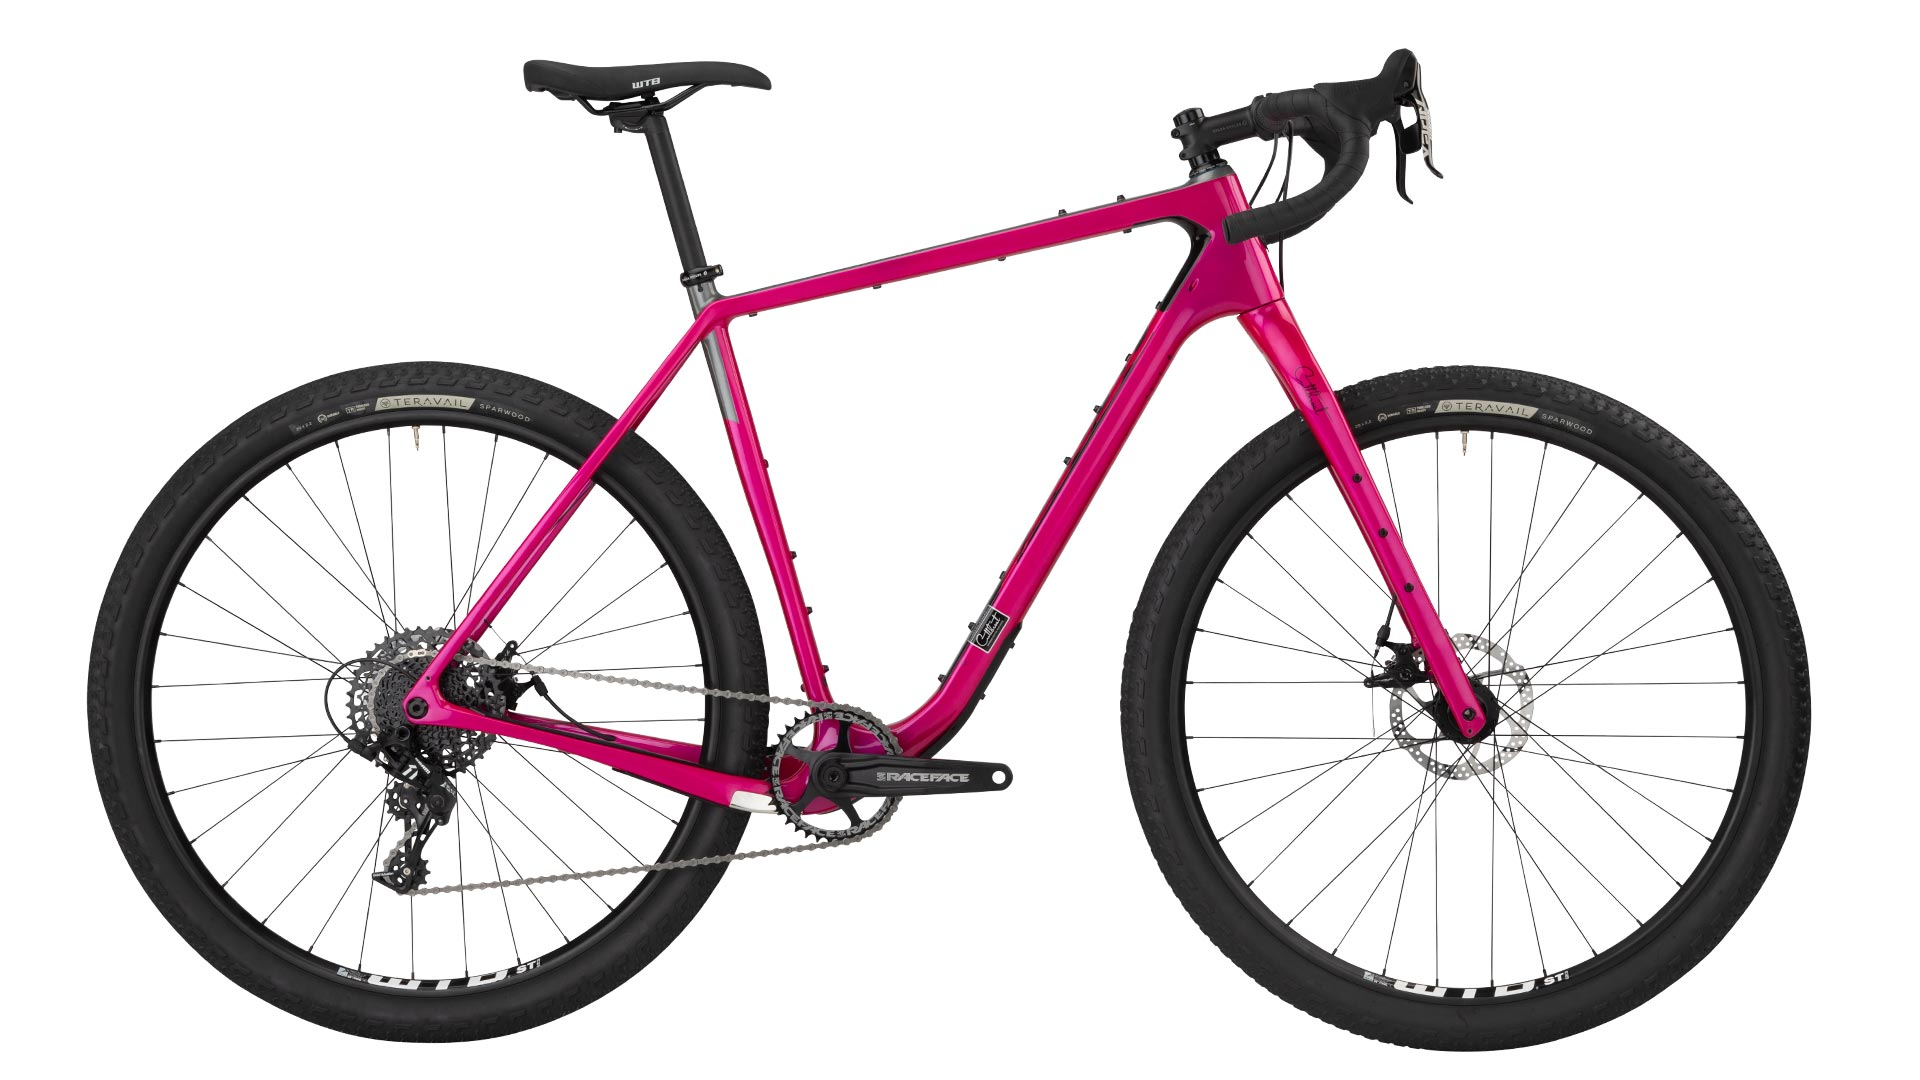 Salsa Cutthroat 2020 Apex 1 in Pink